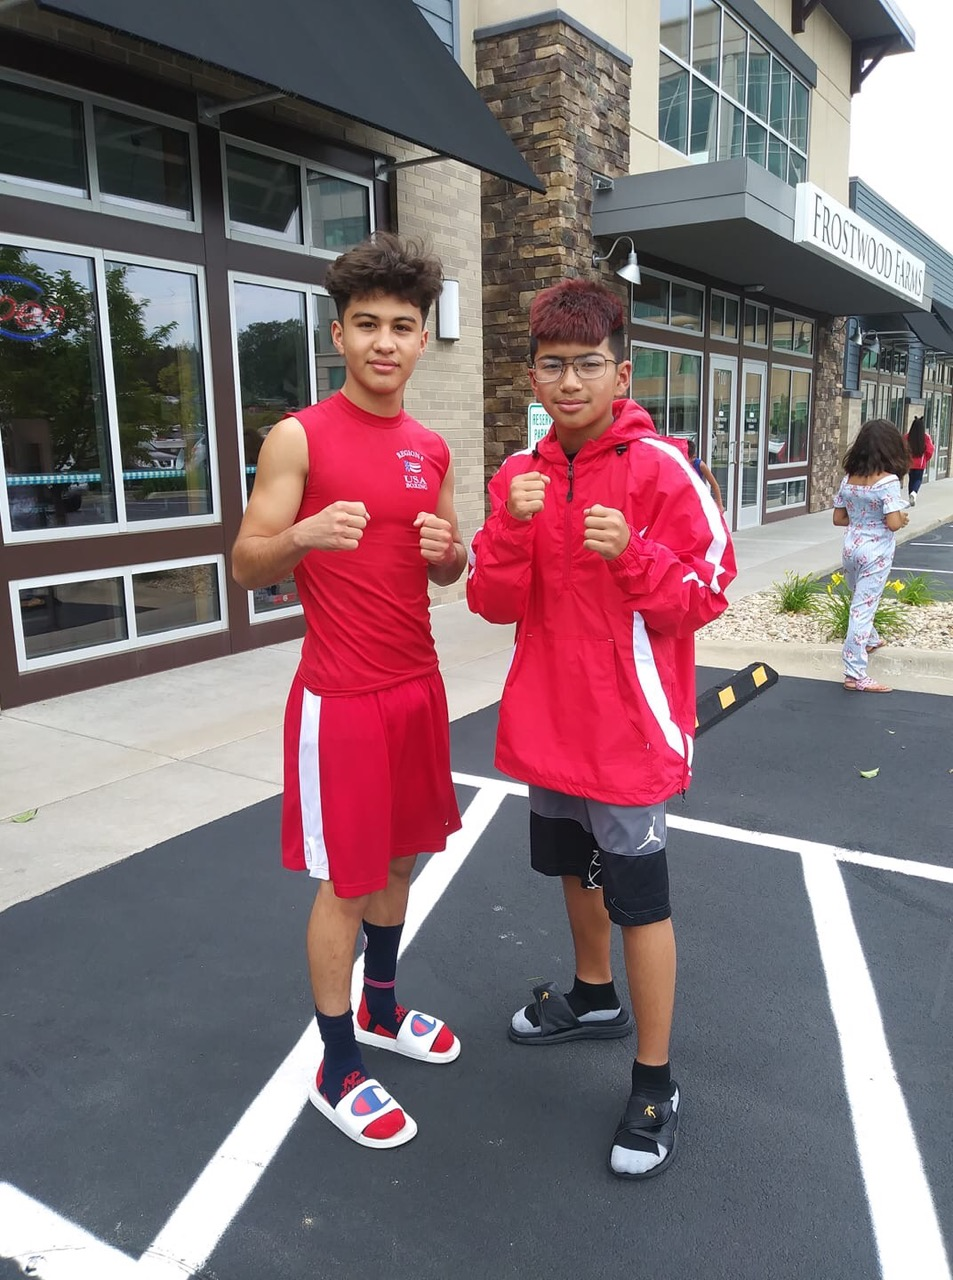 Two youth boxers